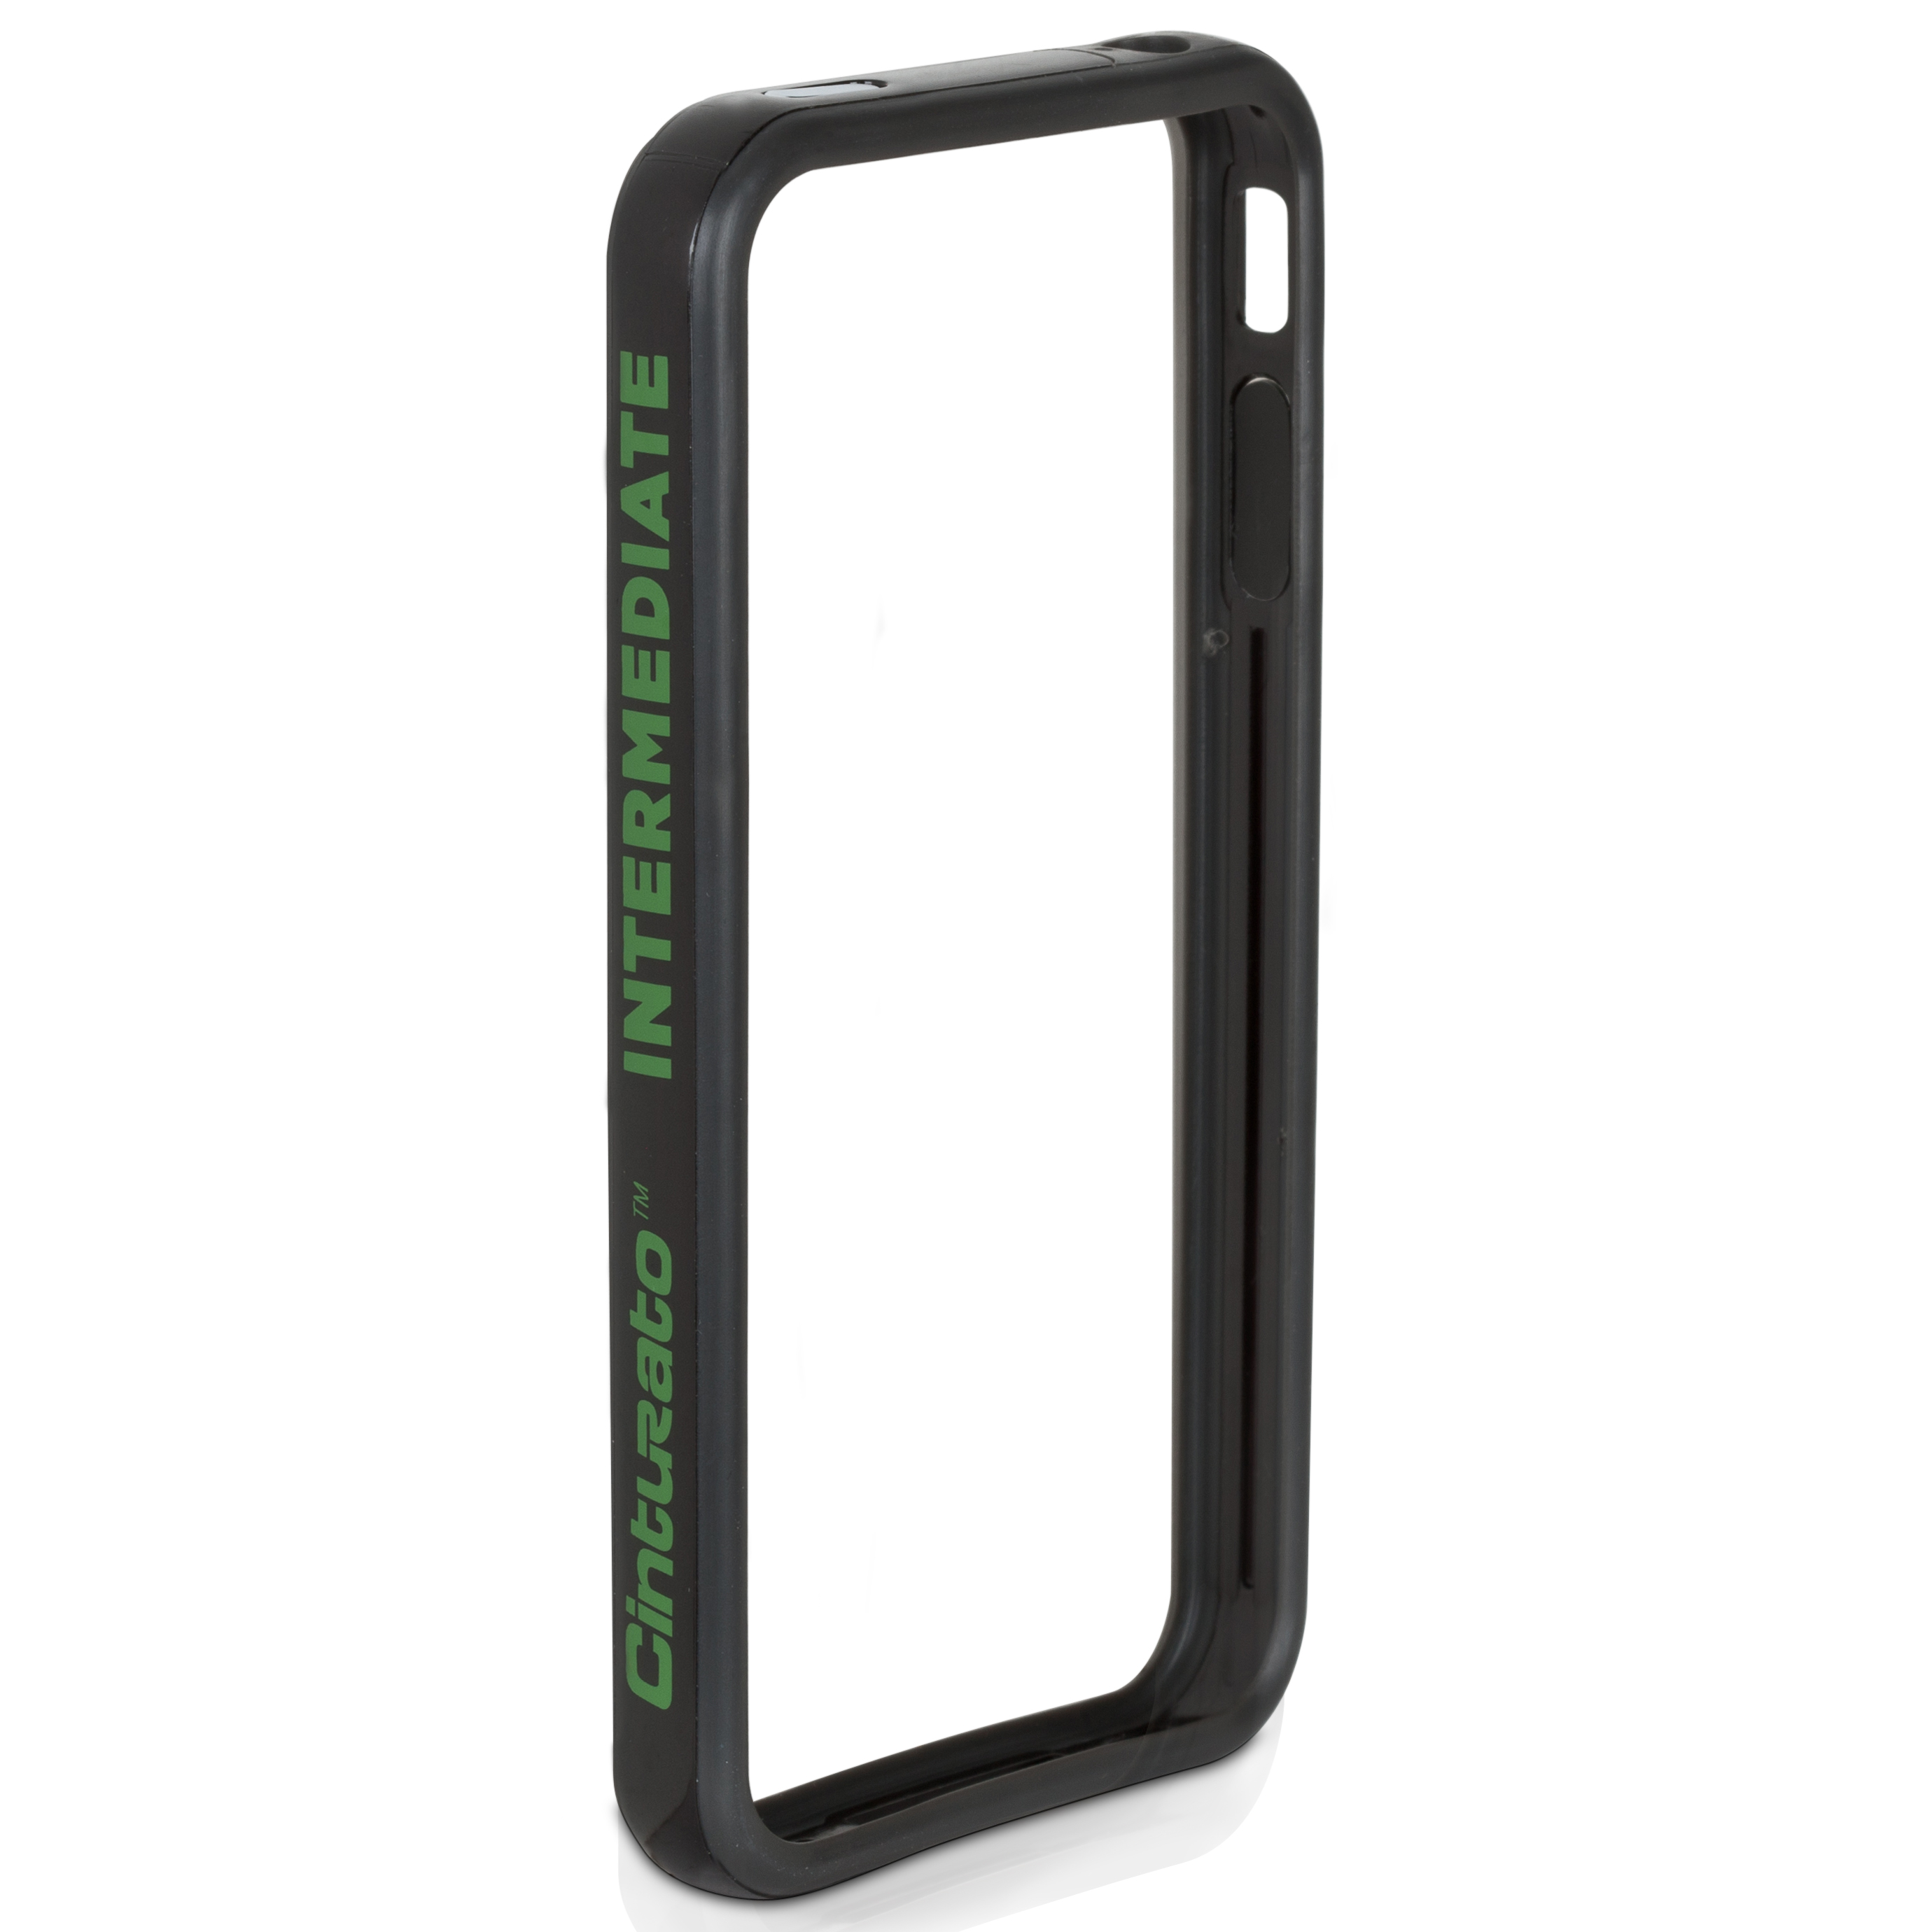 Pirelli Cinturato Intermediate iPhone 4 Bumper